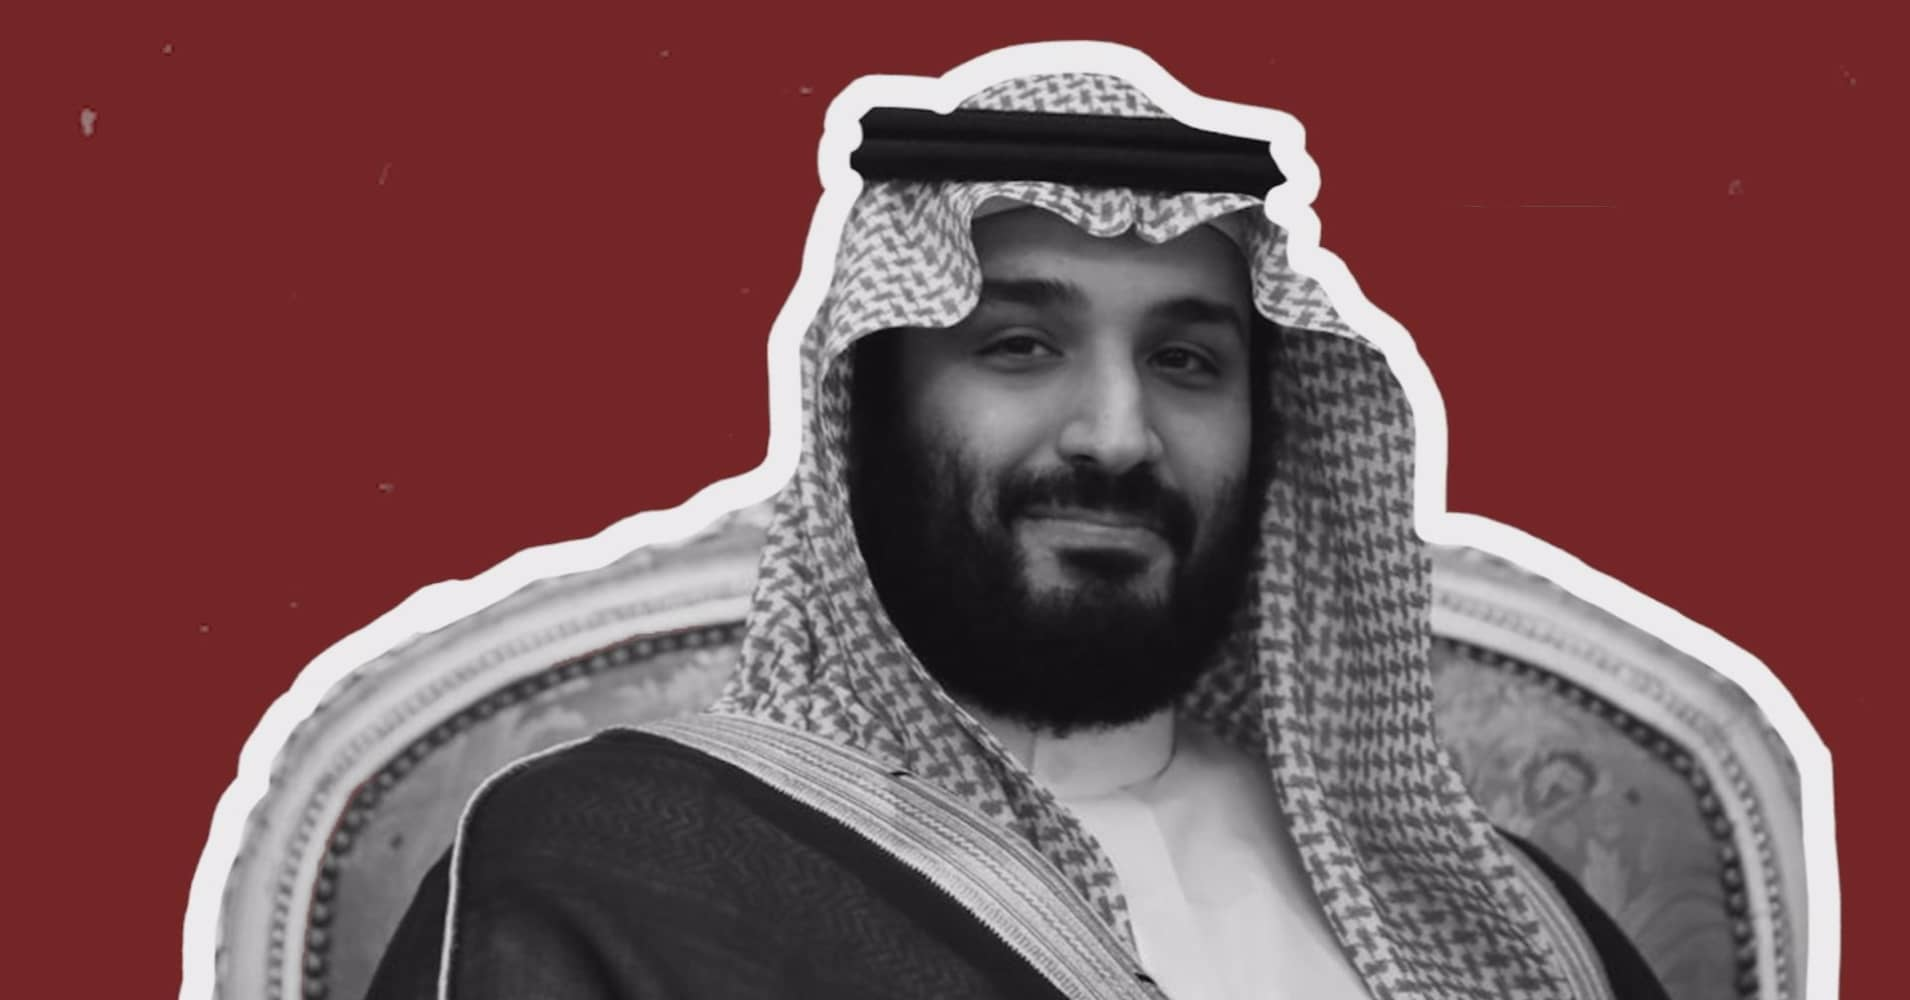 Who is MBS? The prince at the center of Saudi Arabia's controversy